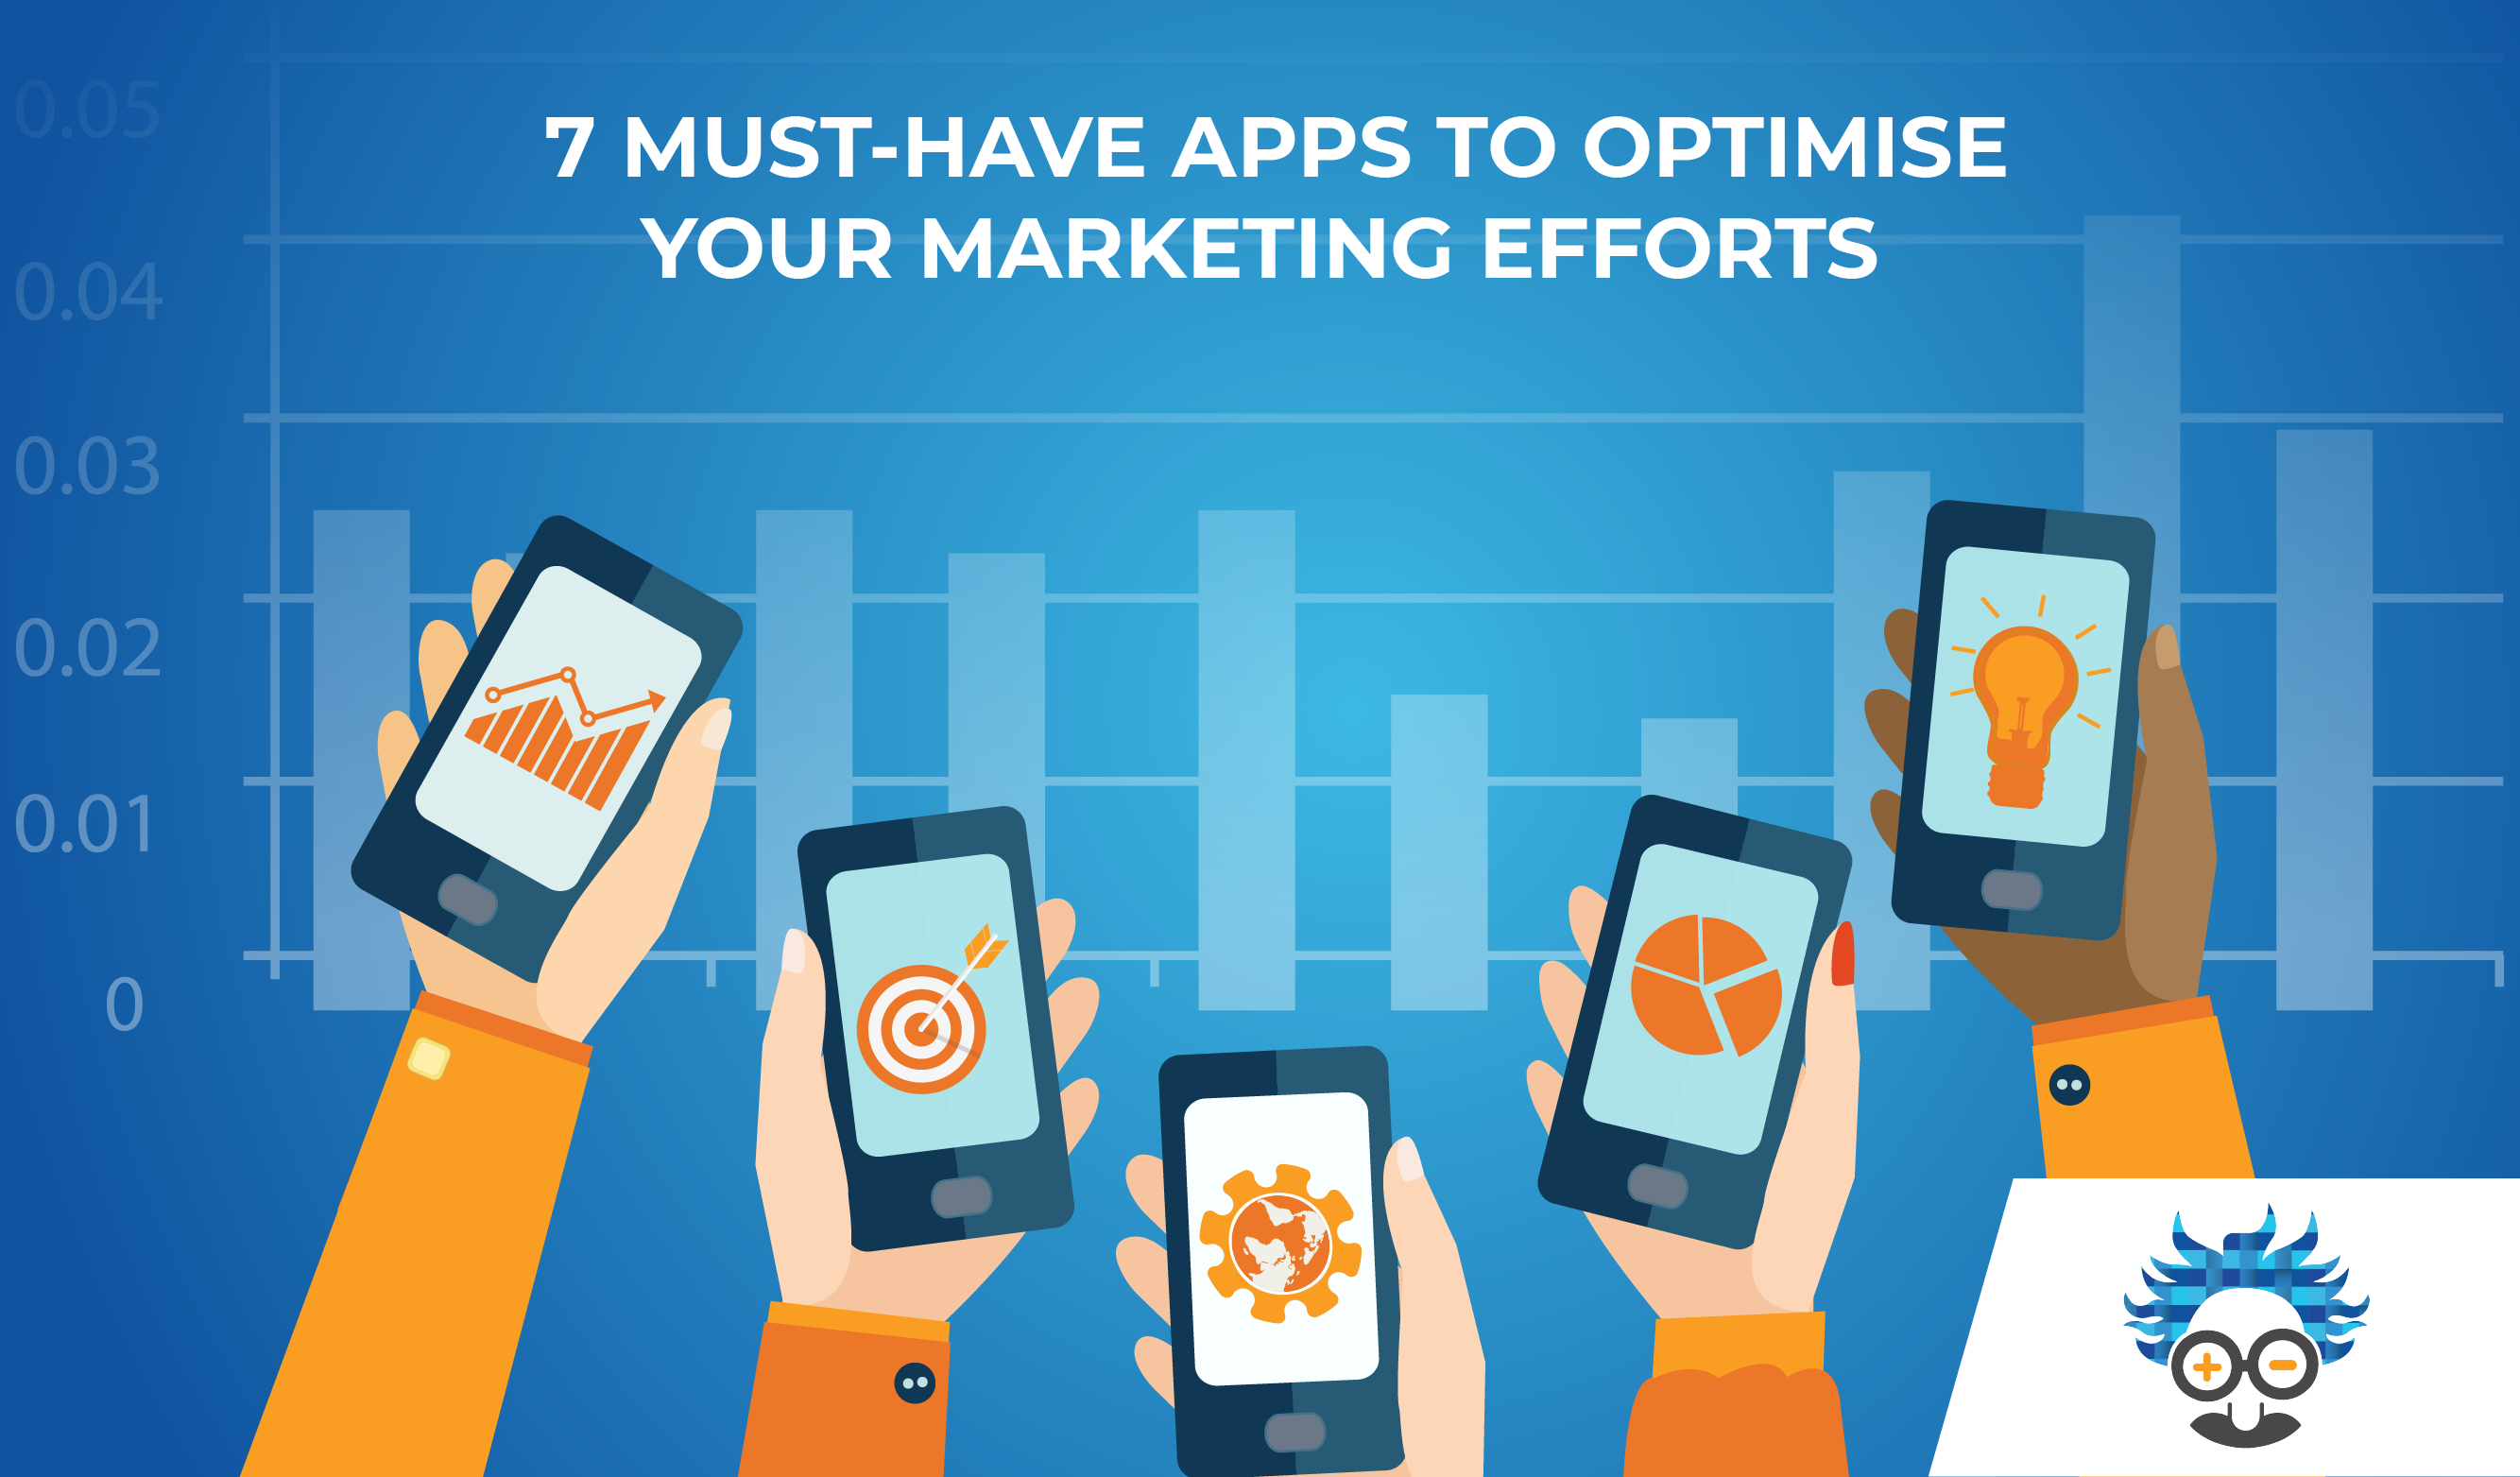 marketing apps must-have